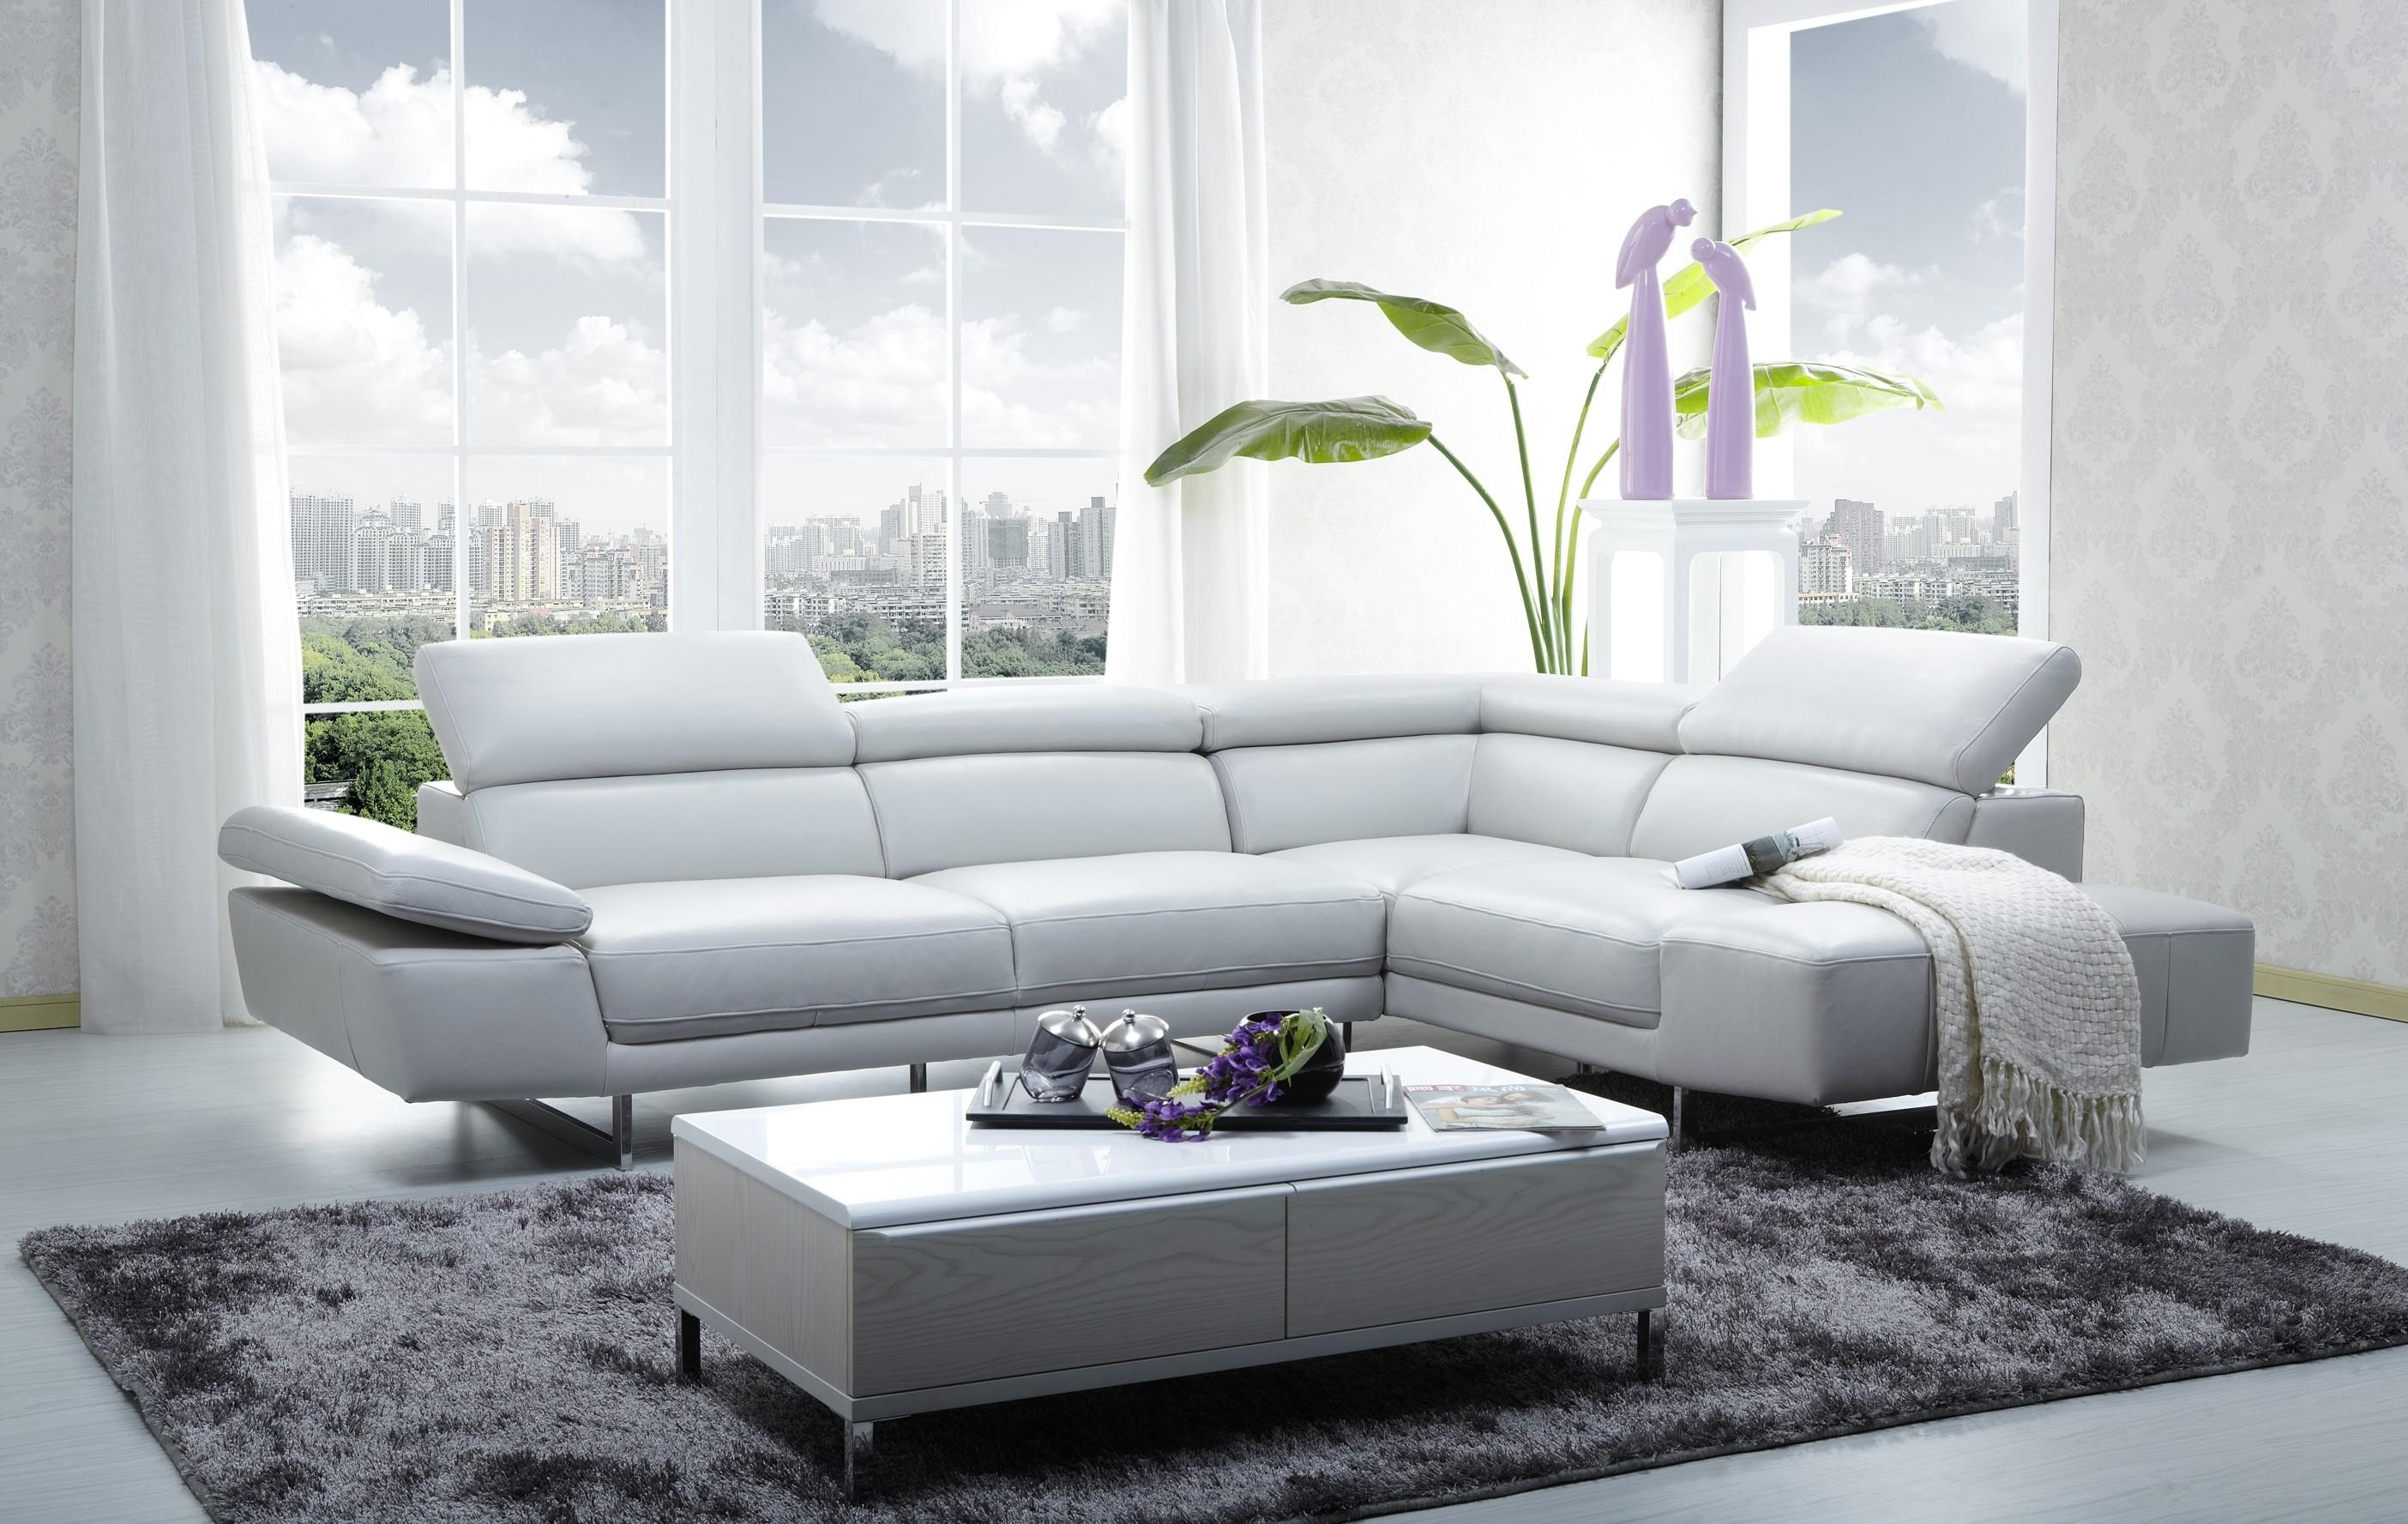 Modern Sofa Slipcovers Sofas And Loveseats White | Deseosol Inside Modern Sofas (Image 15 of 20)